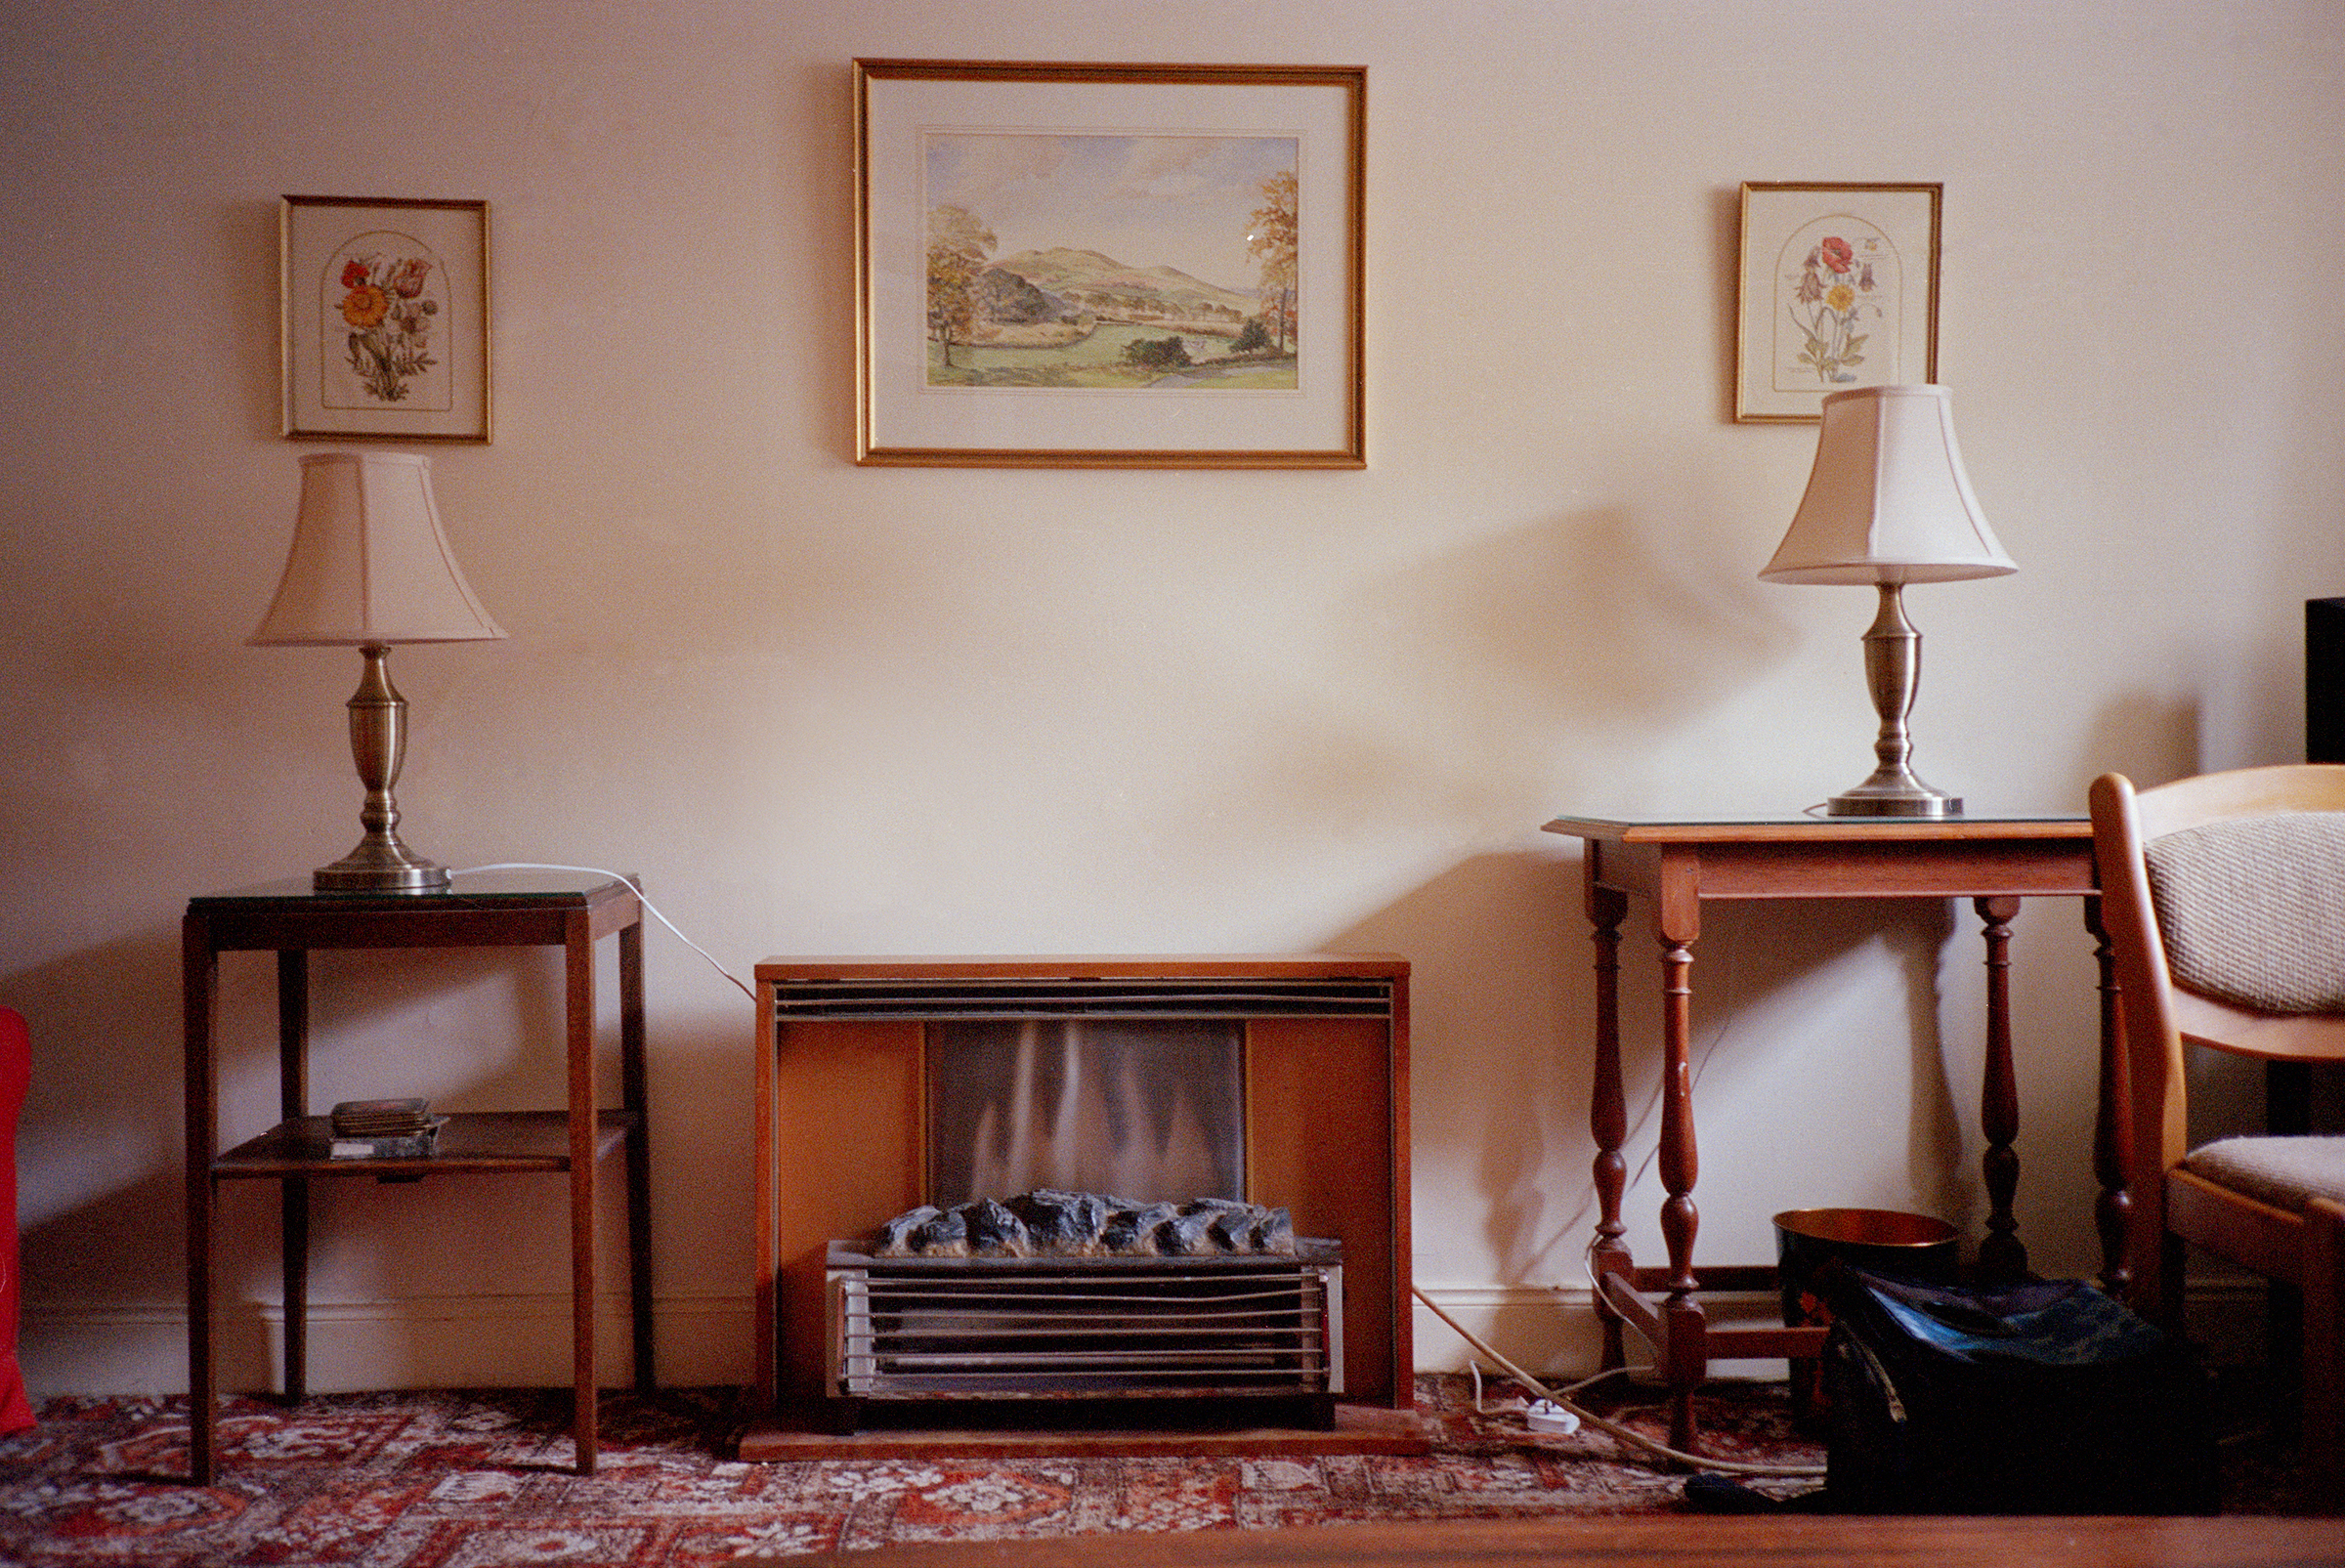 Plug-in Fireplace, St Andrews (2014)